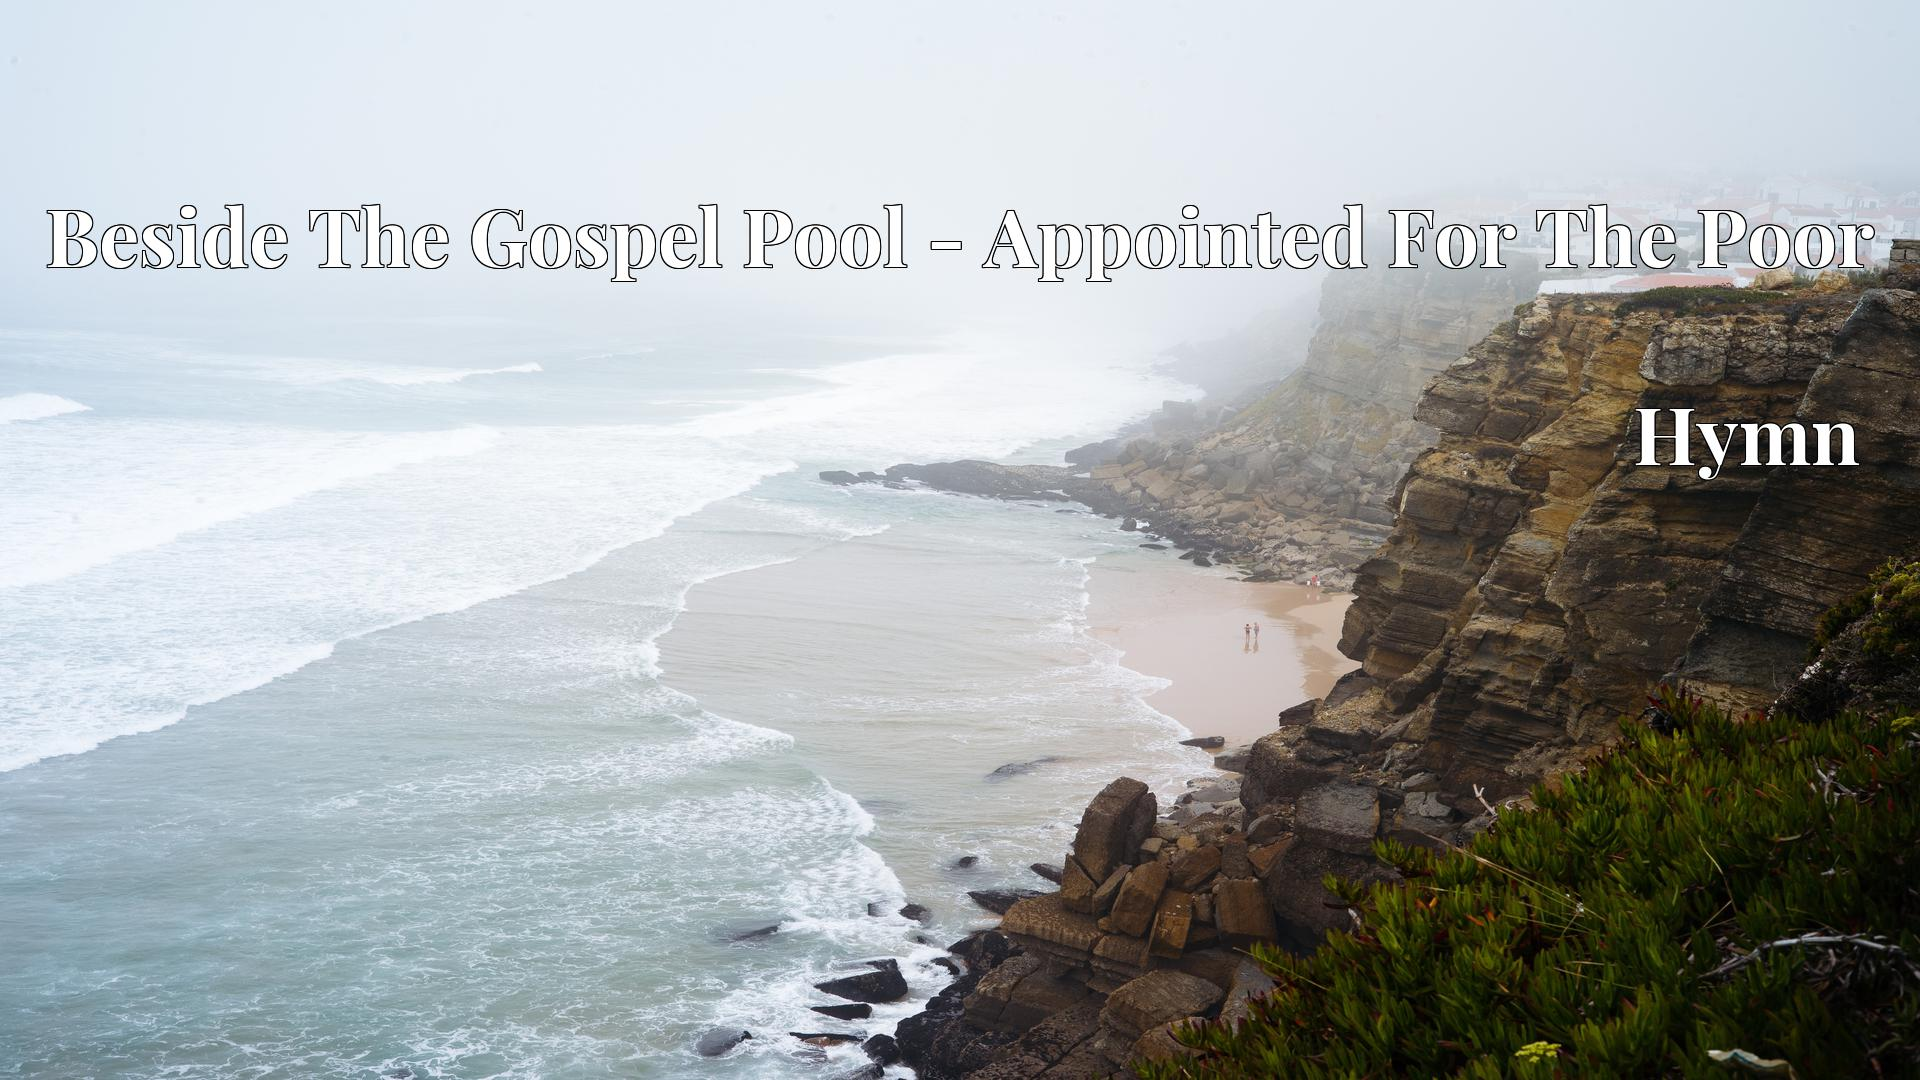 Beside The Gospel Pool - Appointed For The Poor Hymn